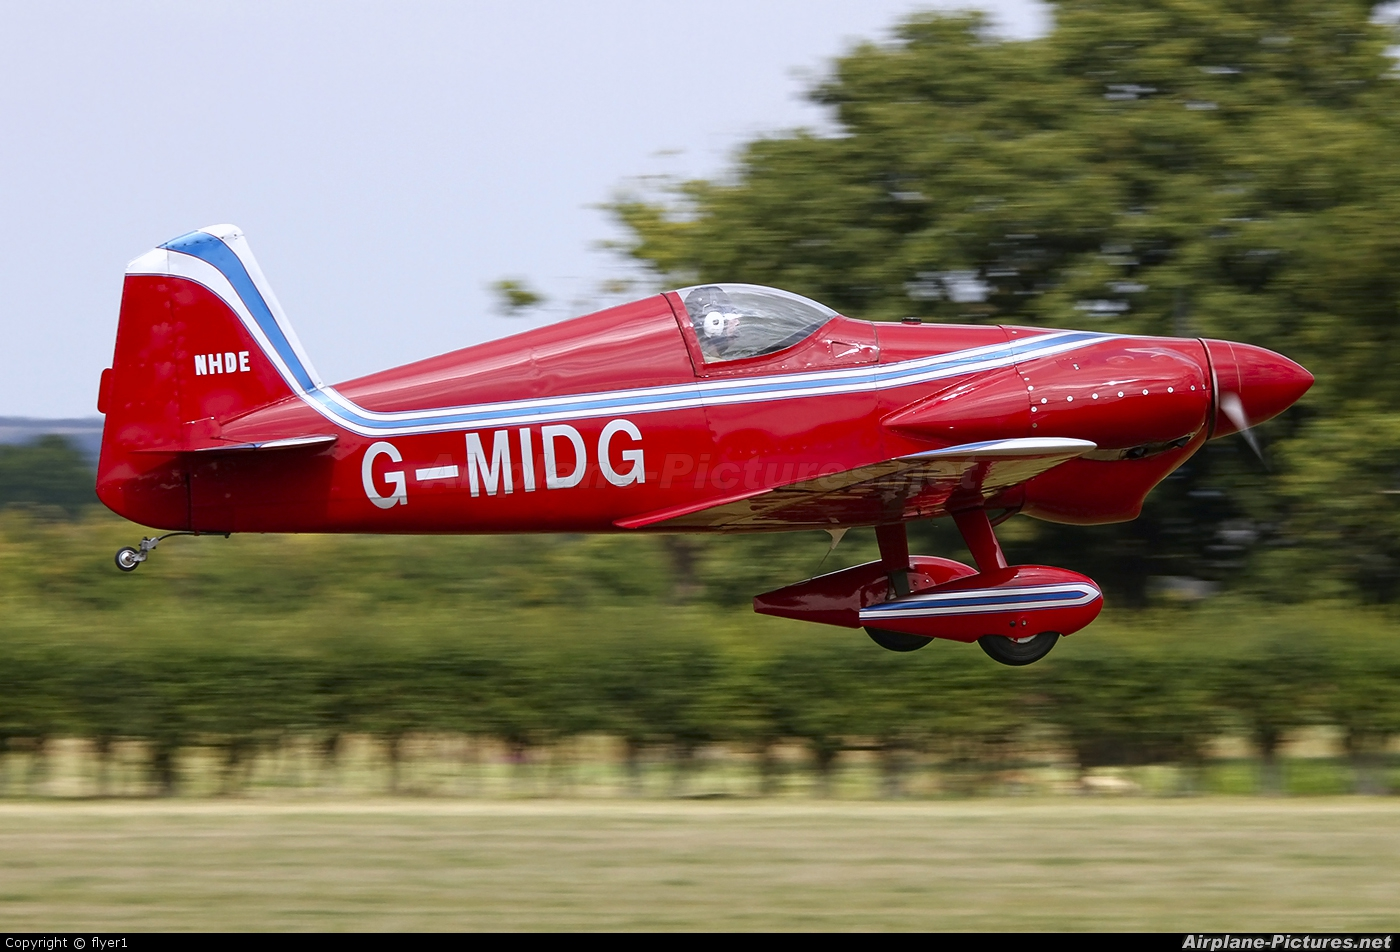 for sale Midget mustang aircraft